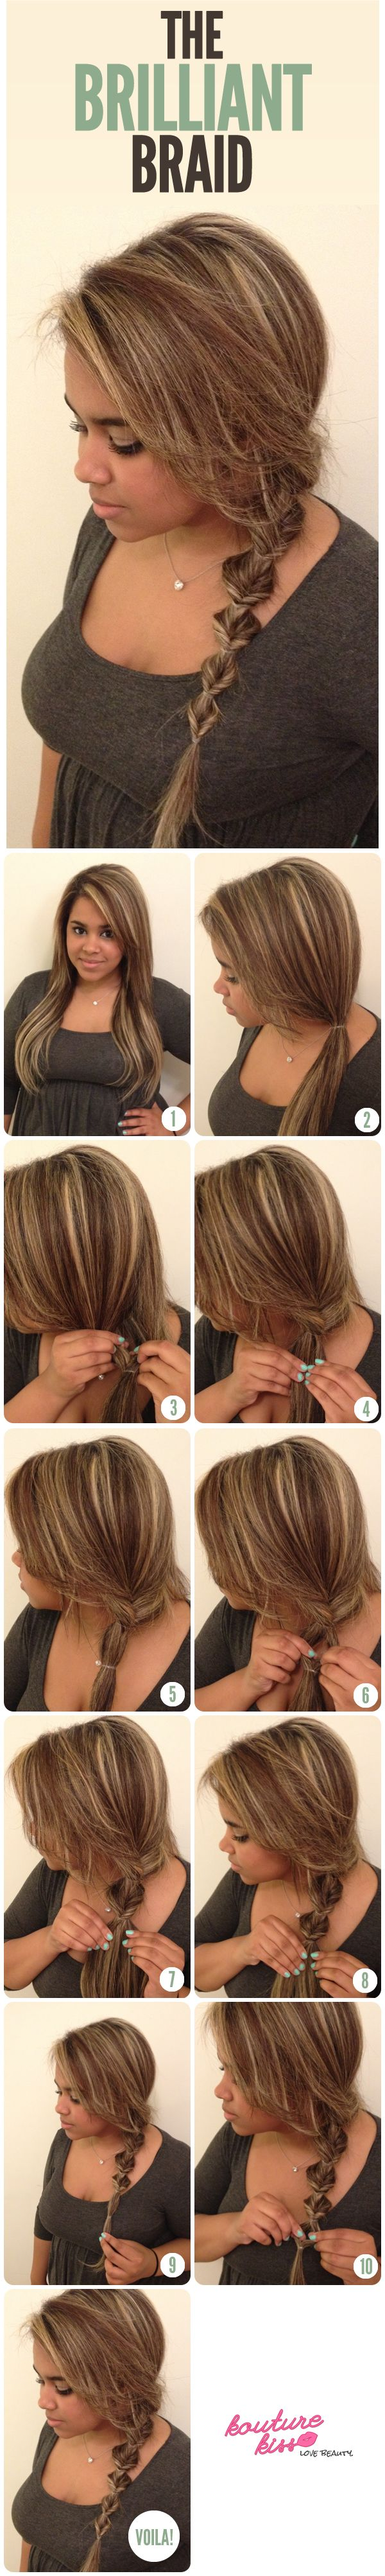 The Brilliant Braid..I see what you did there.. #hairstyle #DIY